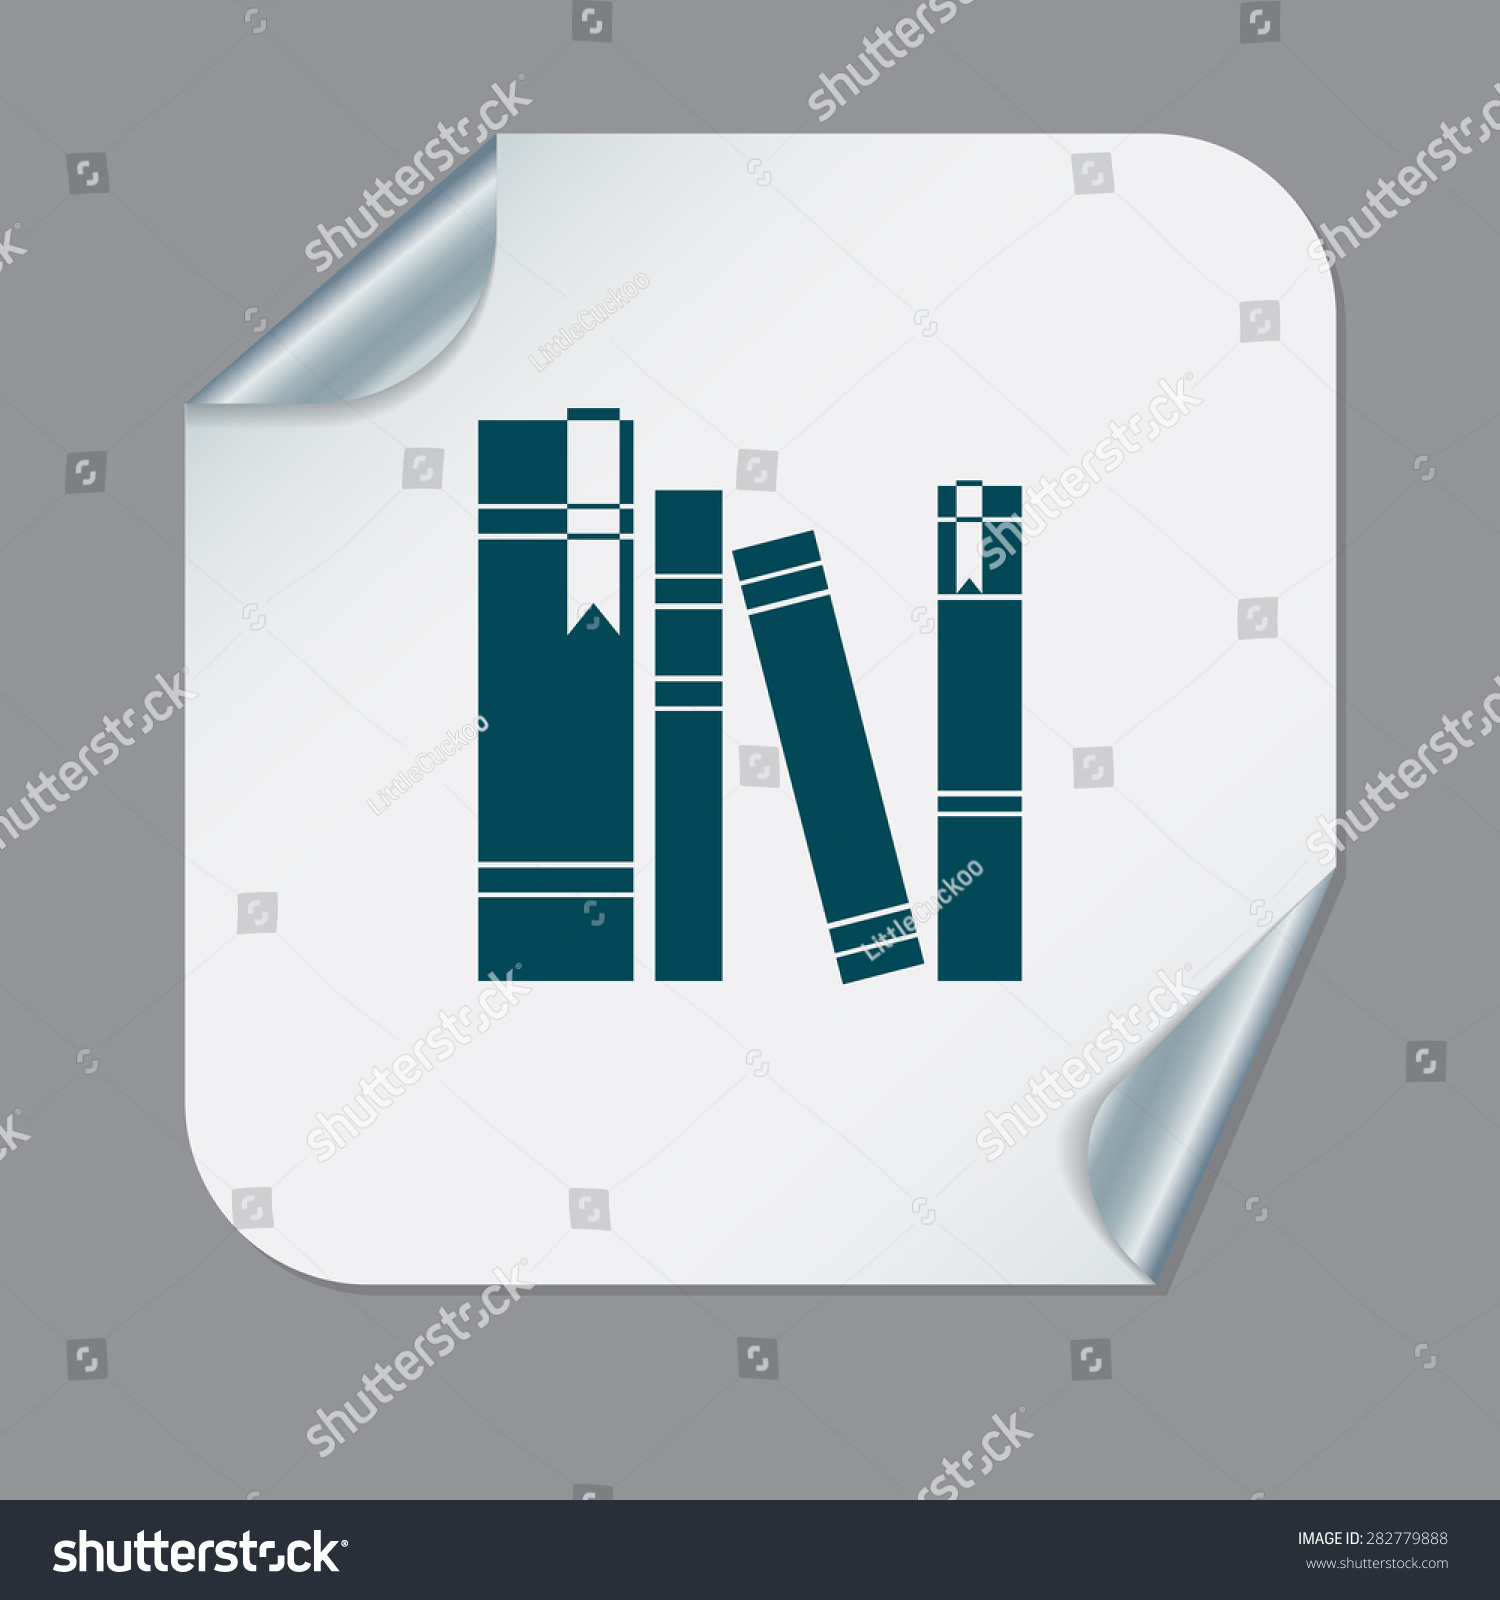 Book Spine Spines Books Icon Symbol Stock Vector 282779888